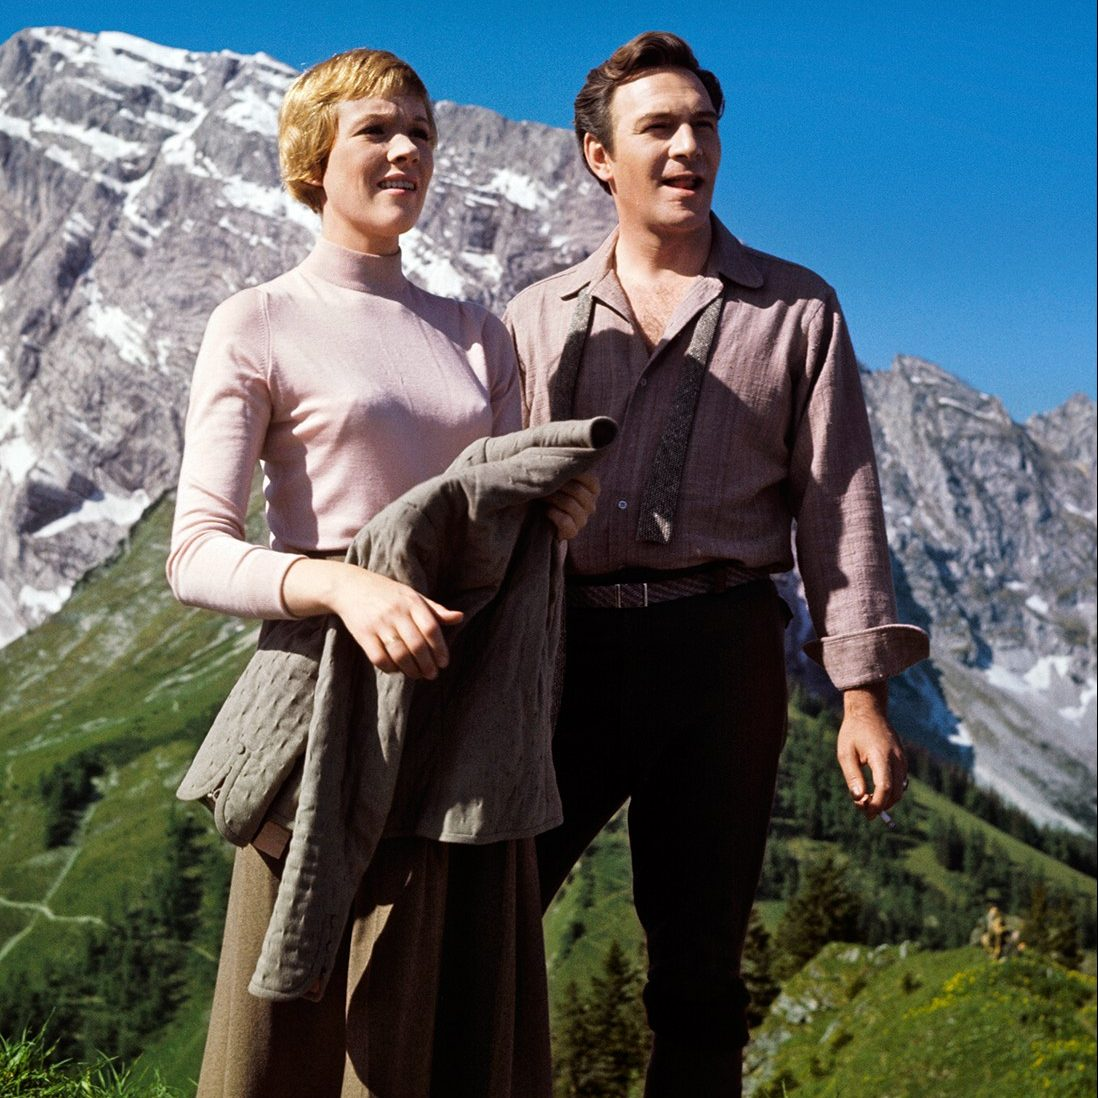 ss01 sound of music vf e1578412138994 20 'Christmas Movies' That Aren't Actually Christmas Movies At All